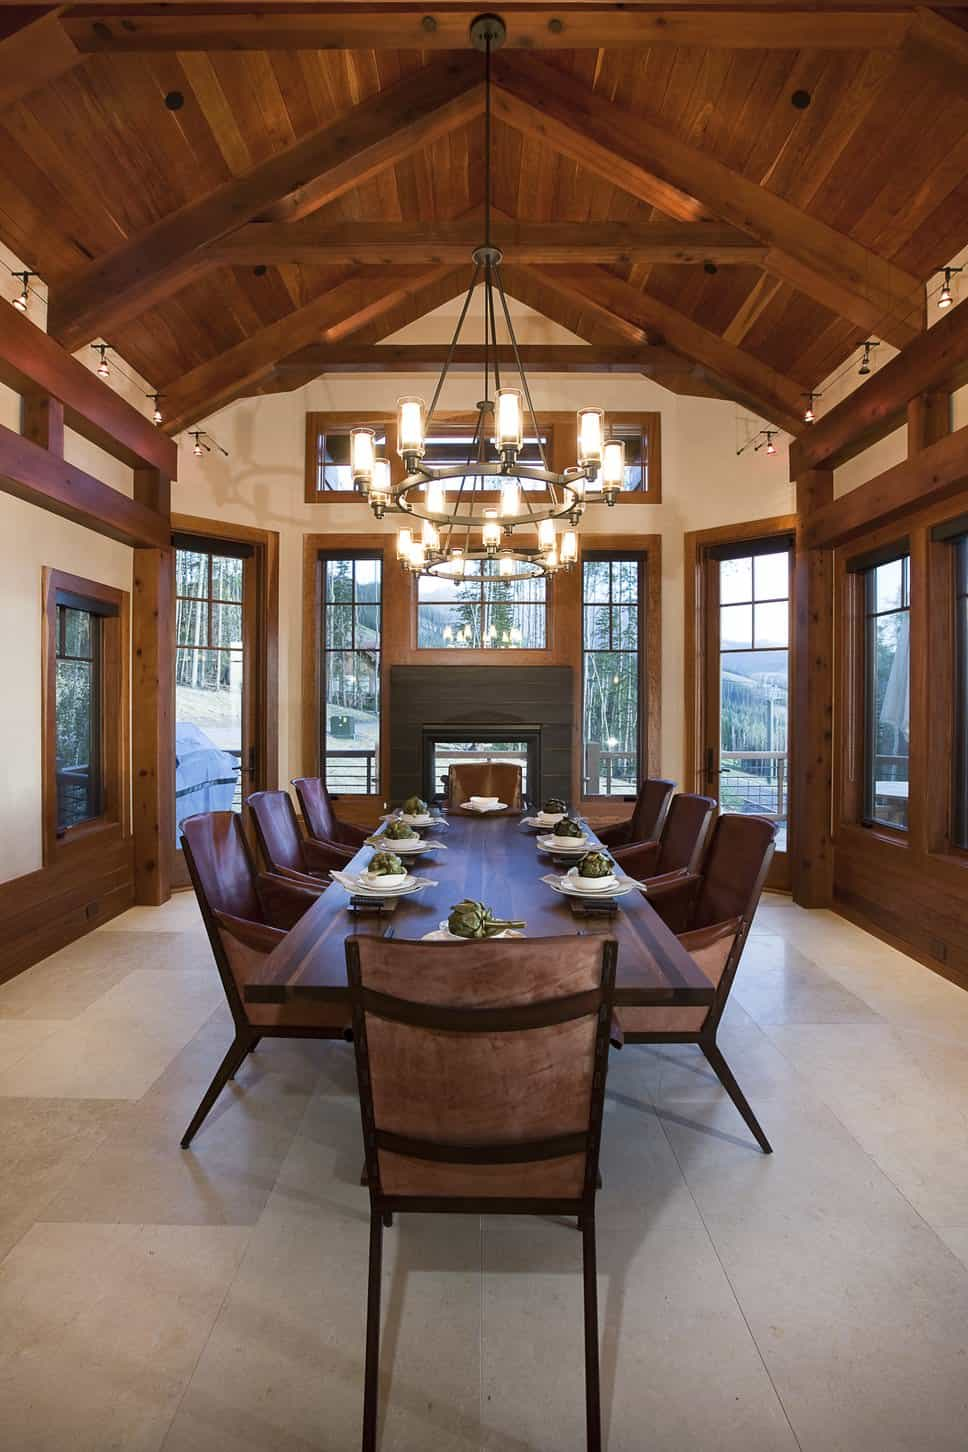 The high cathedral ceiling is filled with large beams with a dark brown hue that matches with the exposed beams of the walls and the frames of the tall windows surrounding the large wooden dining table that is paired with brown leather upholstered chairs.